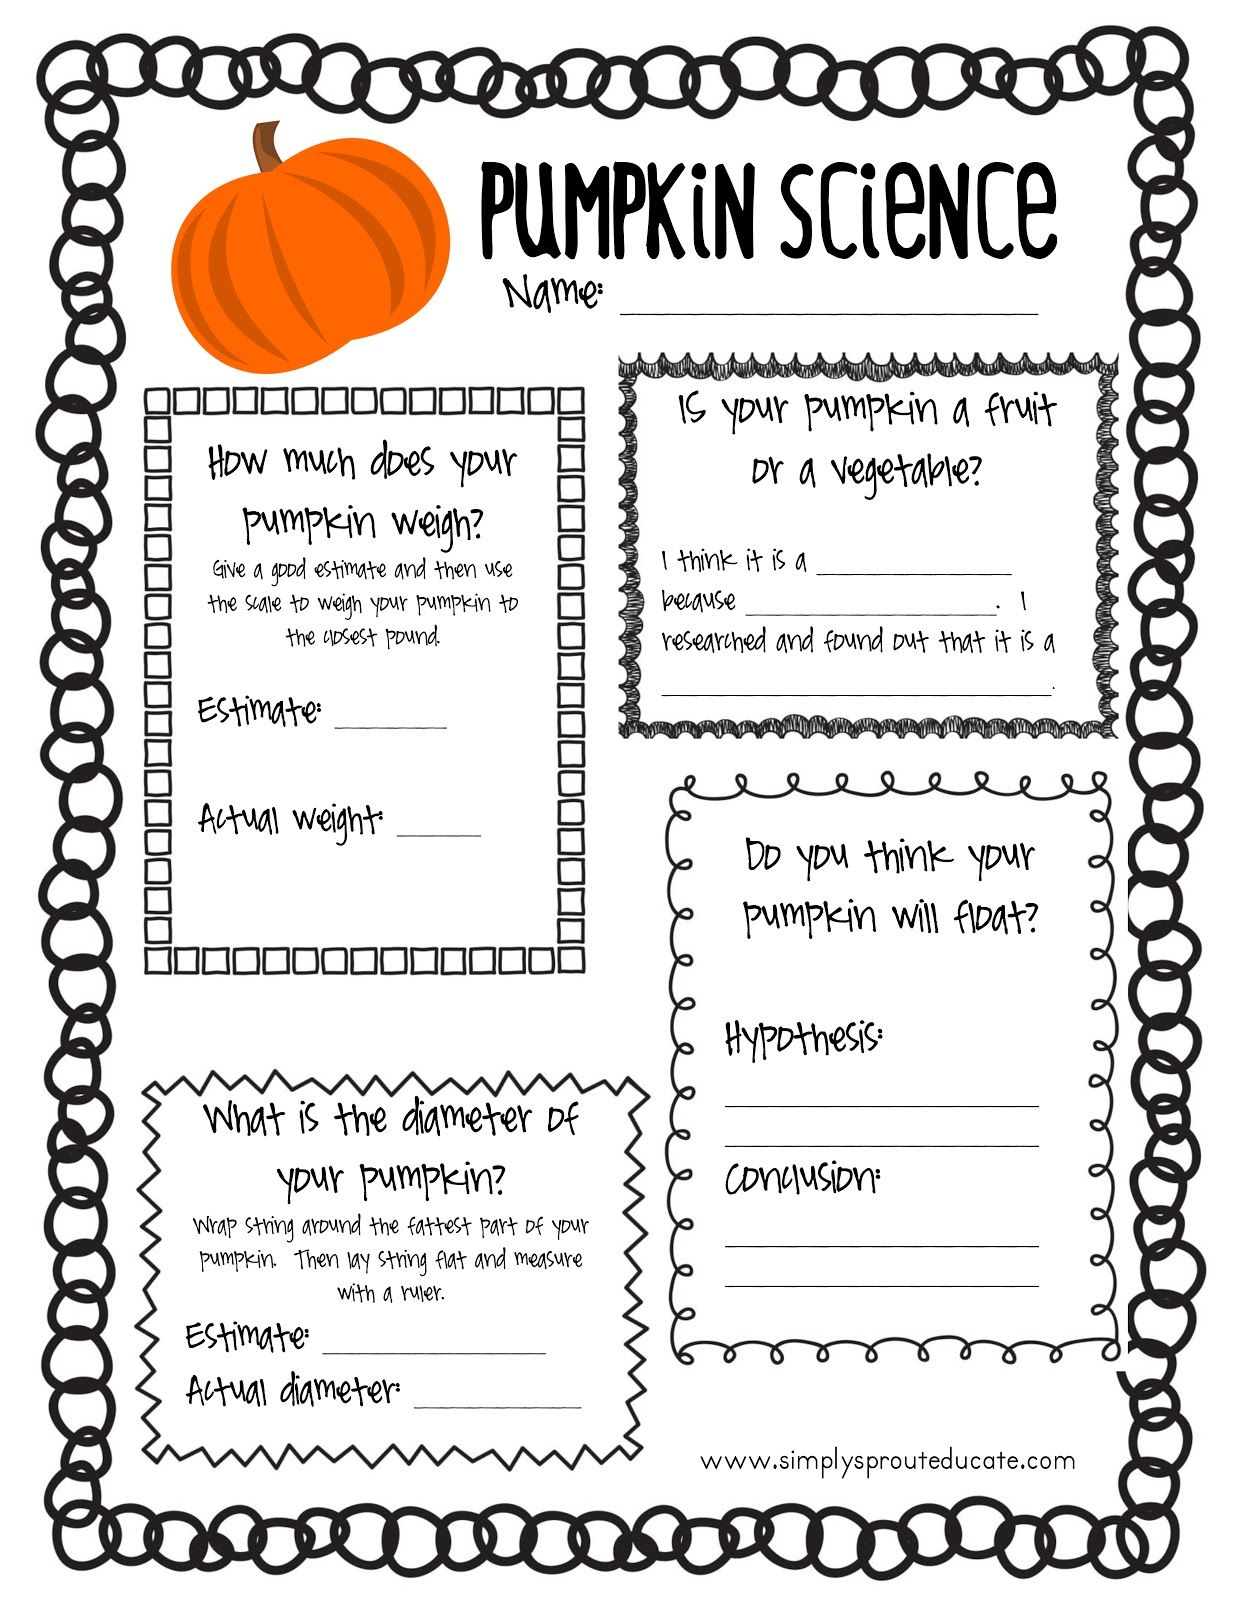 worksheet Parts Of A Pumpkin Worksheet 1000 images about pumpkin fiesta story on pinterest pumpkins life cycles and science experiments